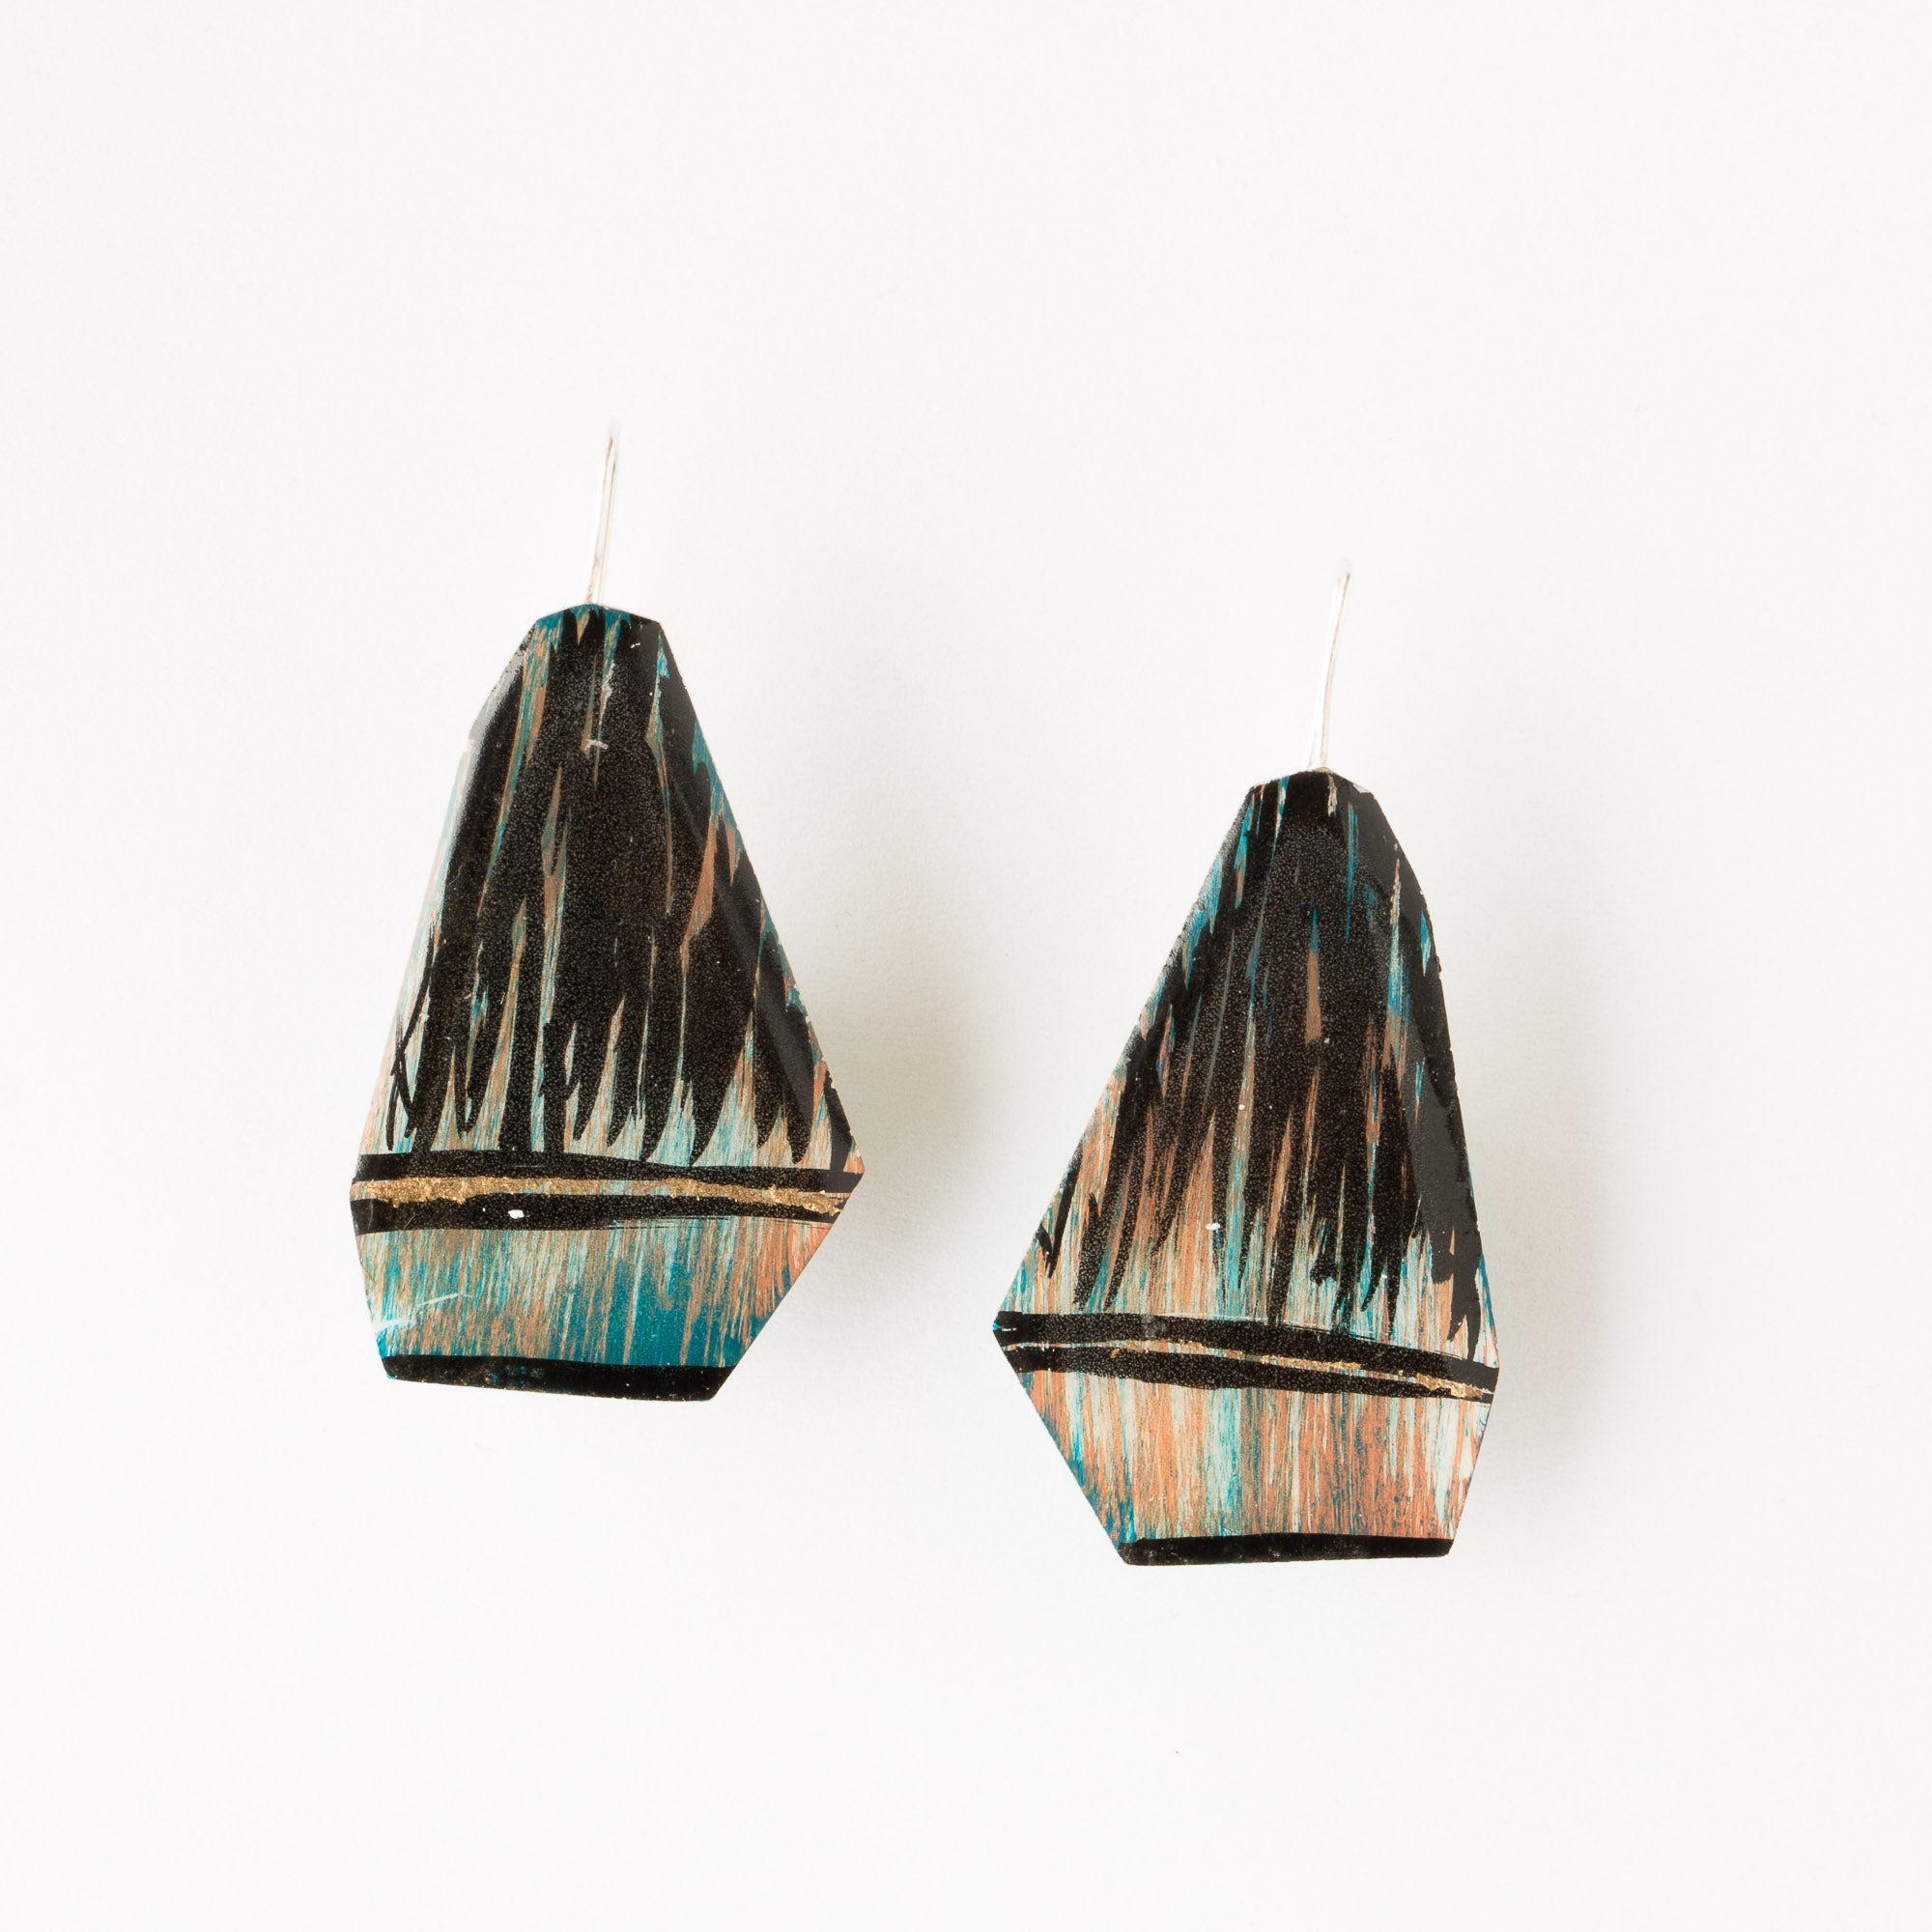 747 - Hand-Painted Contemporary Earrings - Sold by Chic & Basta